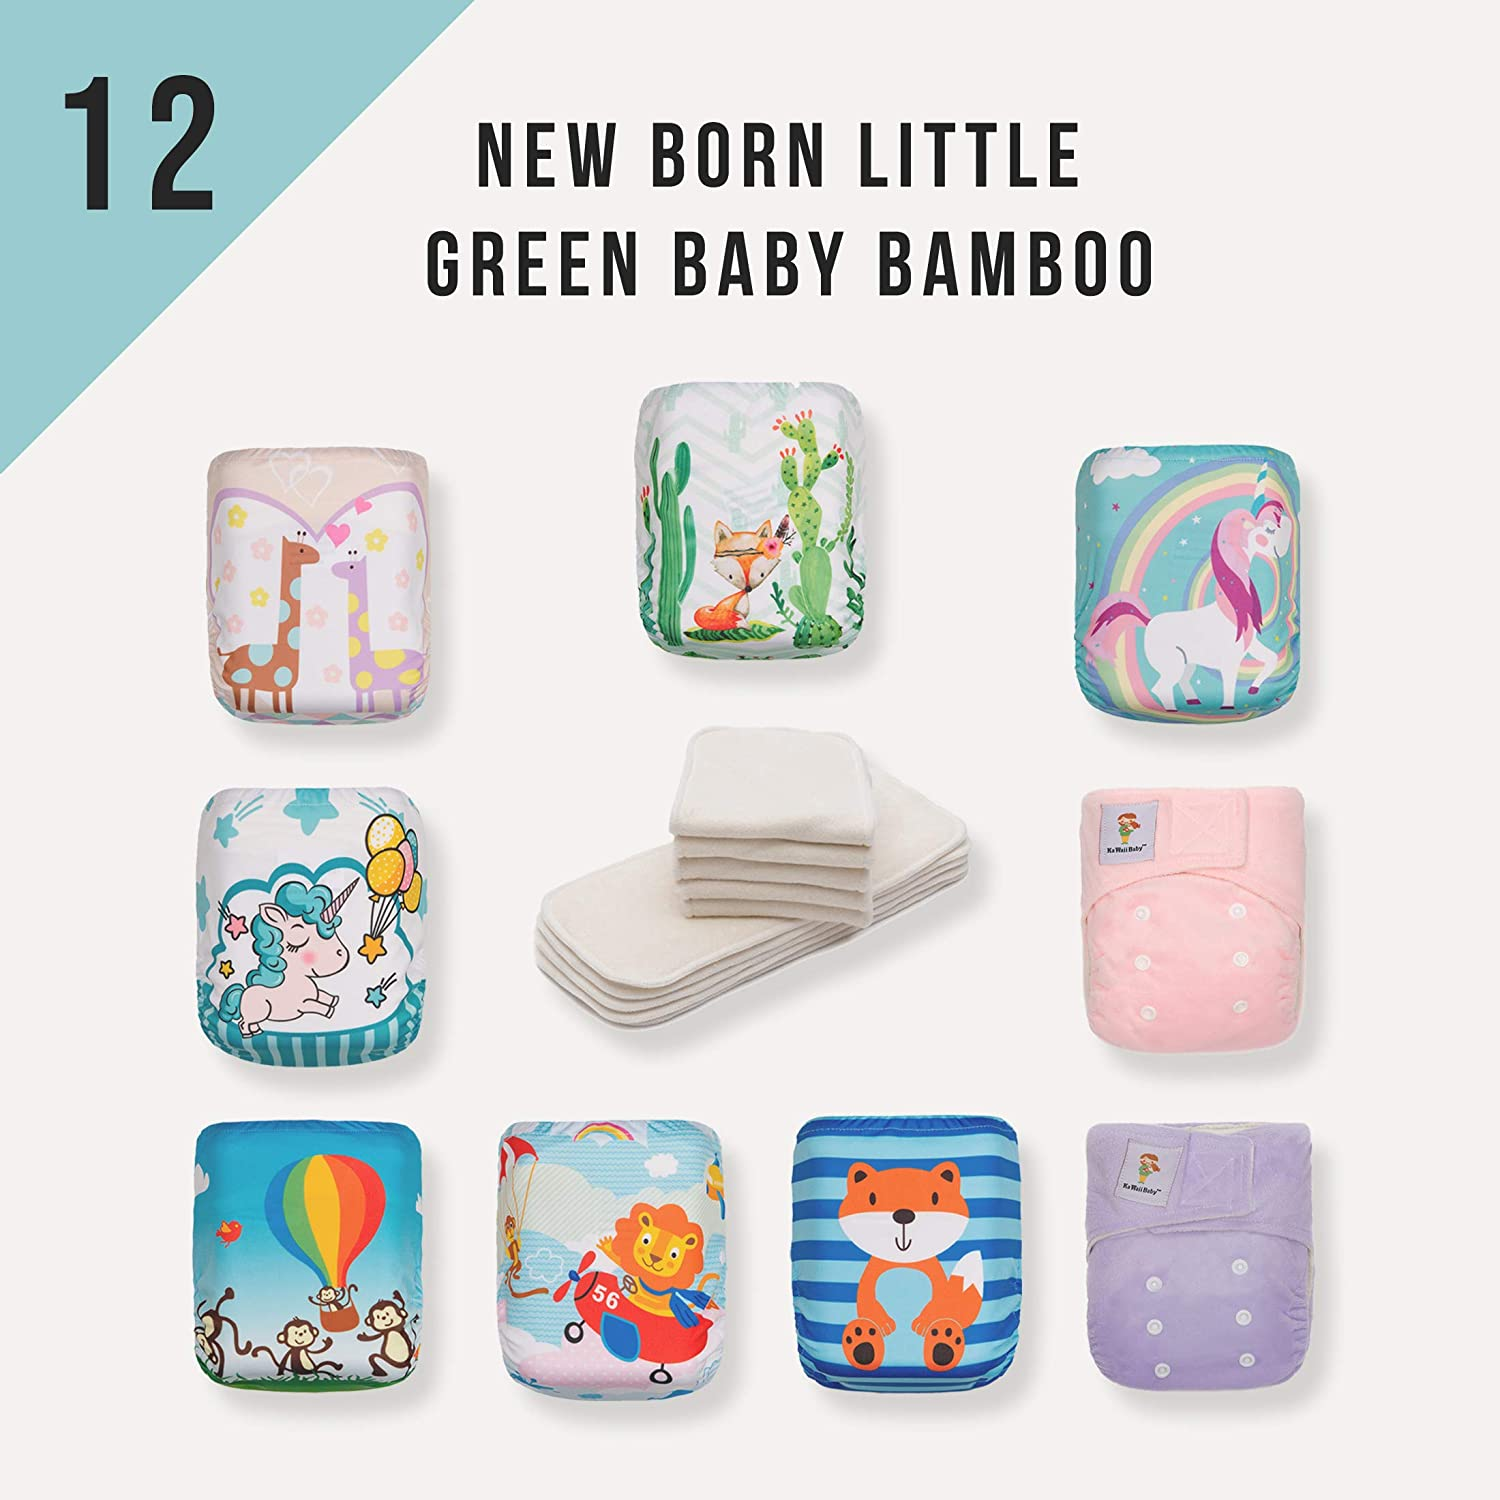 Newborn Diaper Pack! 12 KaWaii Little Green Baby Bamboo Cloth Diapers+24 Bamboo Inserts Luvyourbaby Products